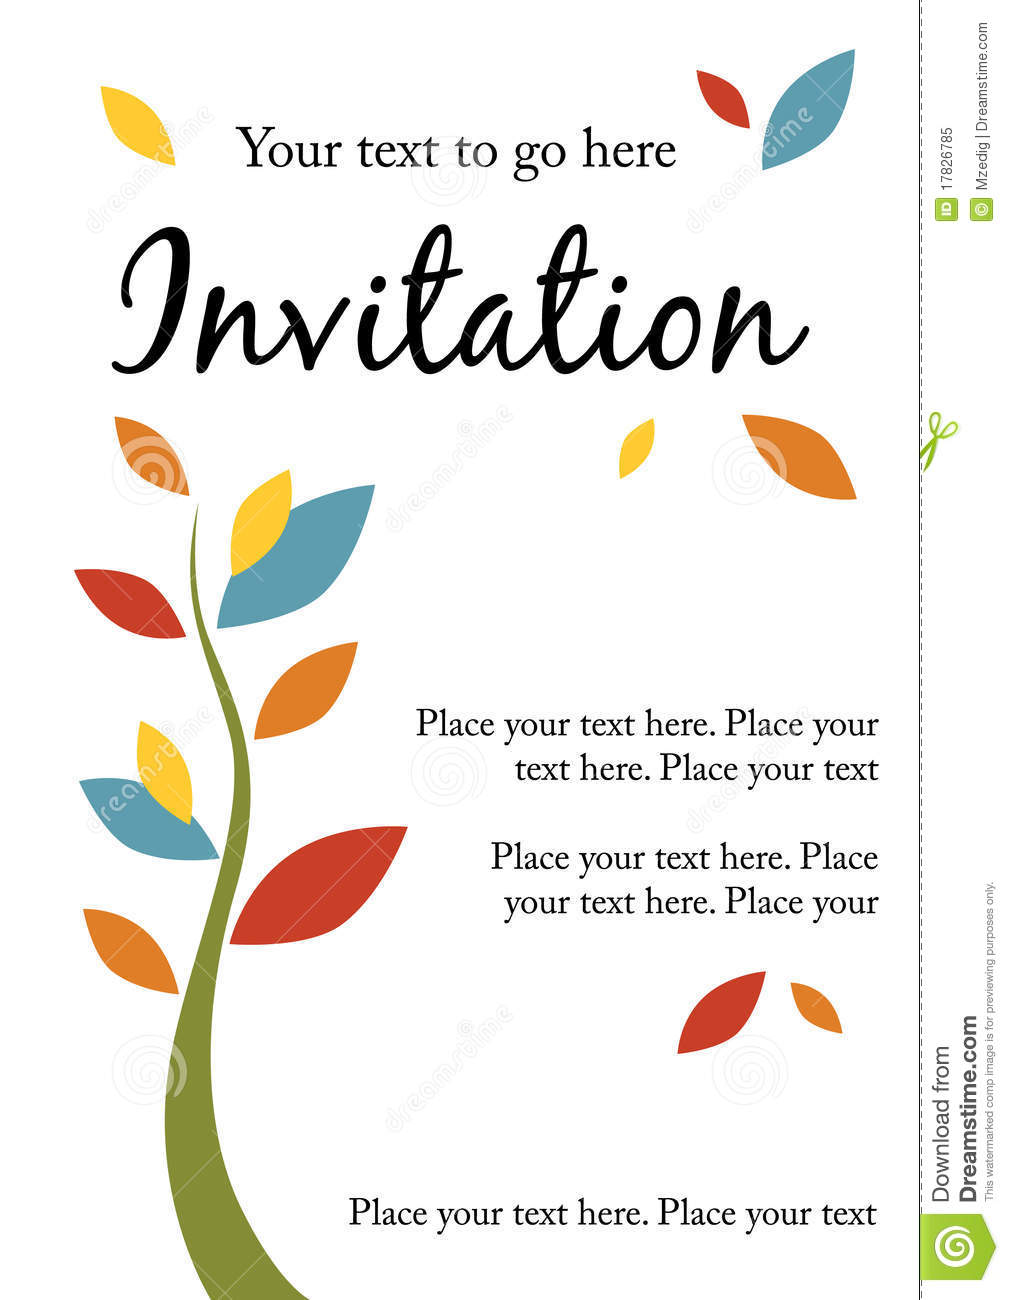 Pretty Party Invitation Royalty Free Stock Photo - Image: 17826785